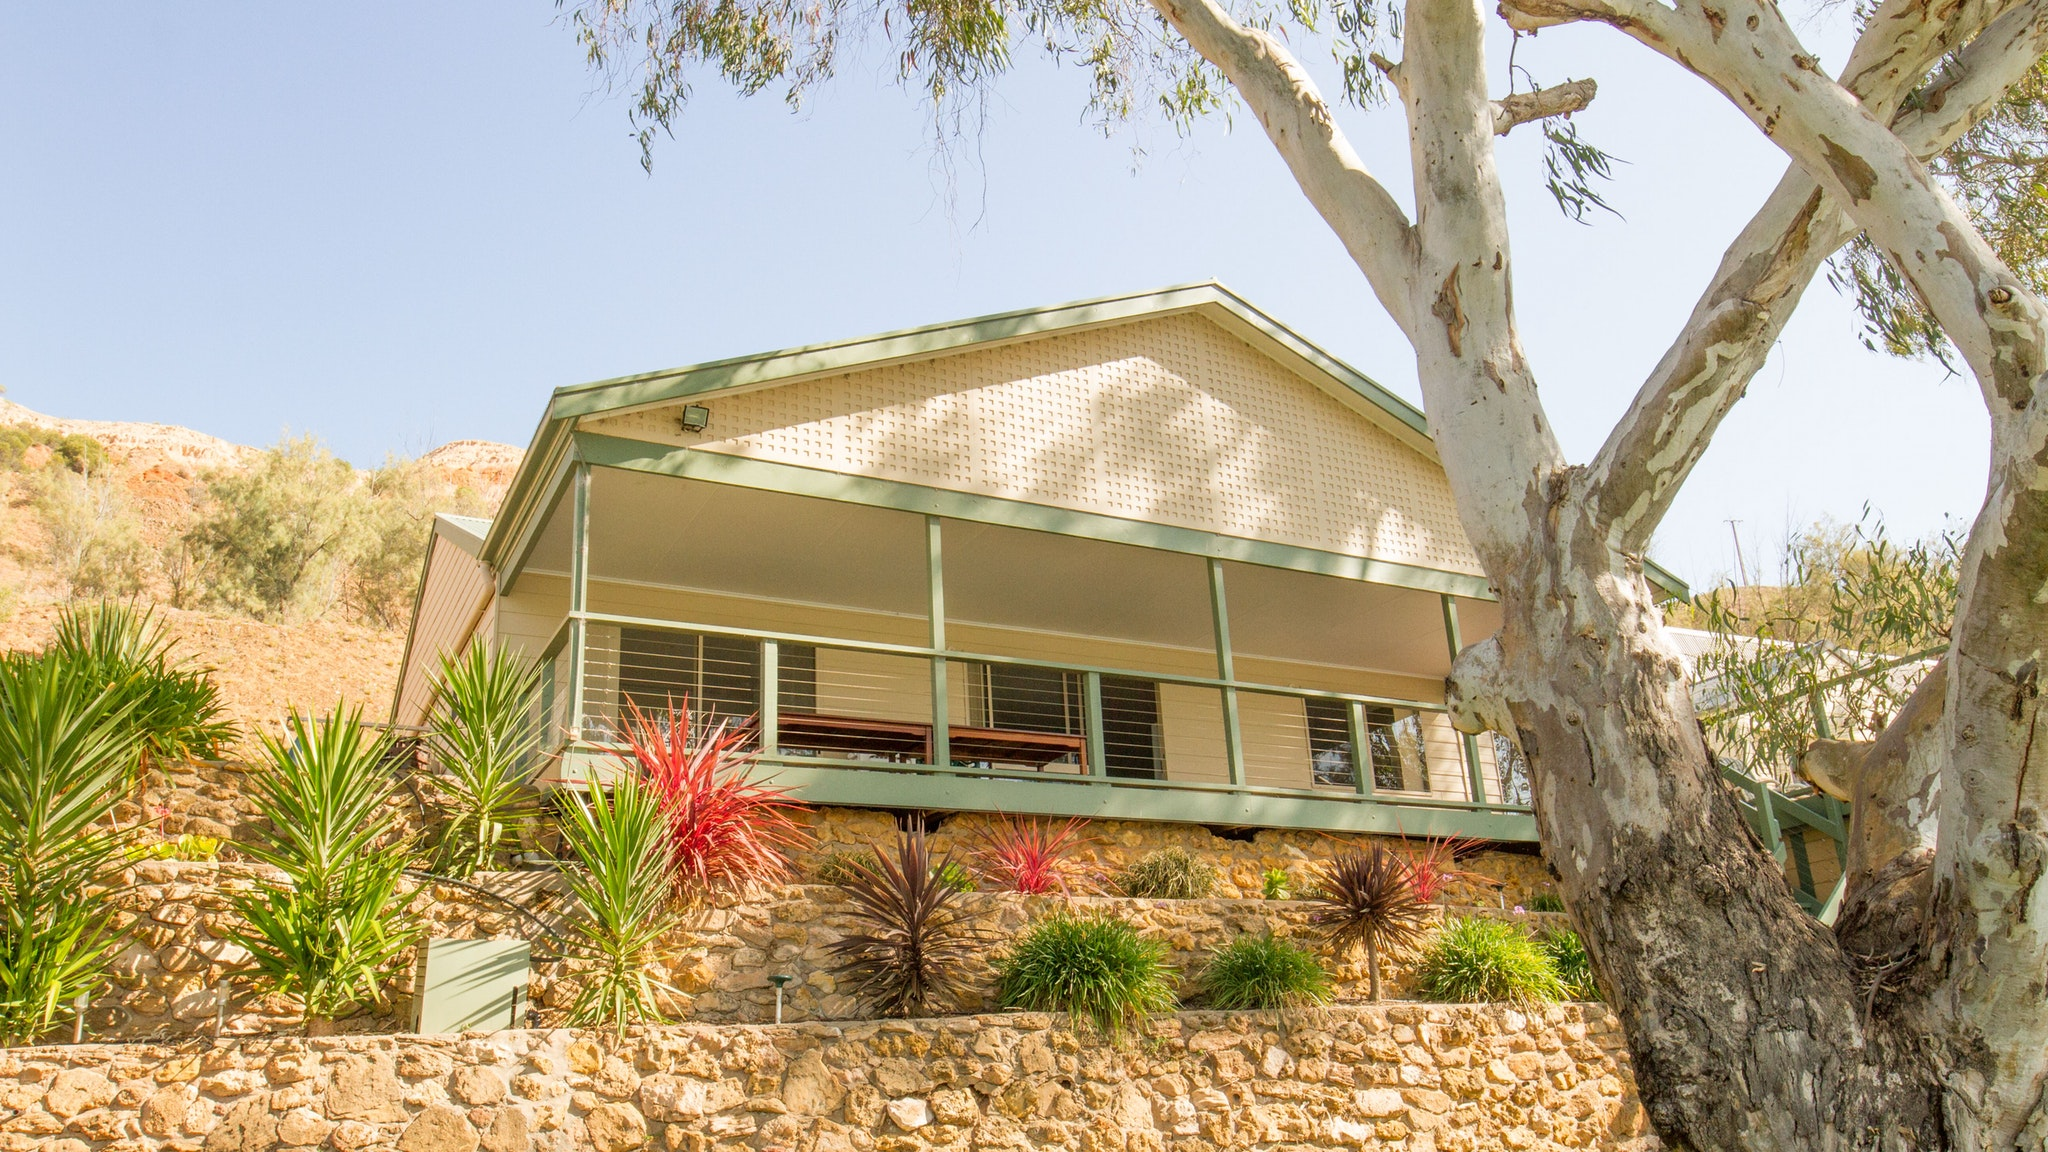 River Shack Rentals - Greenbanks Dr - New South Wales Tourism